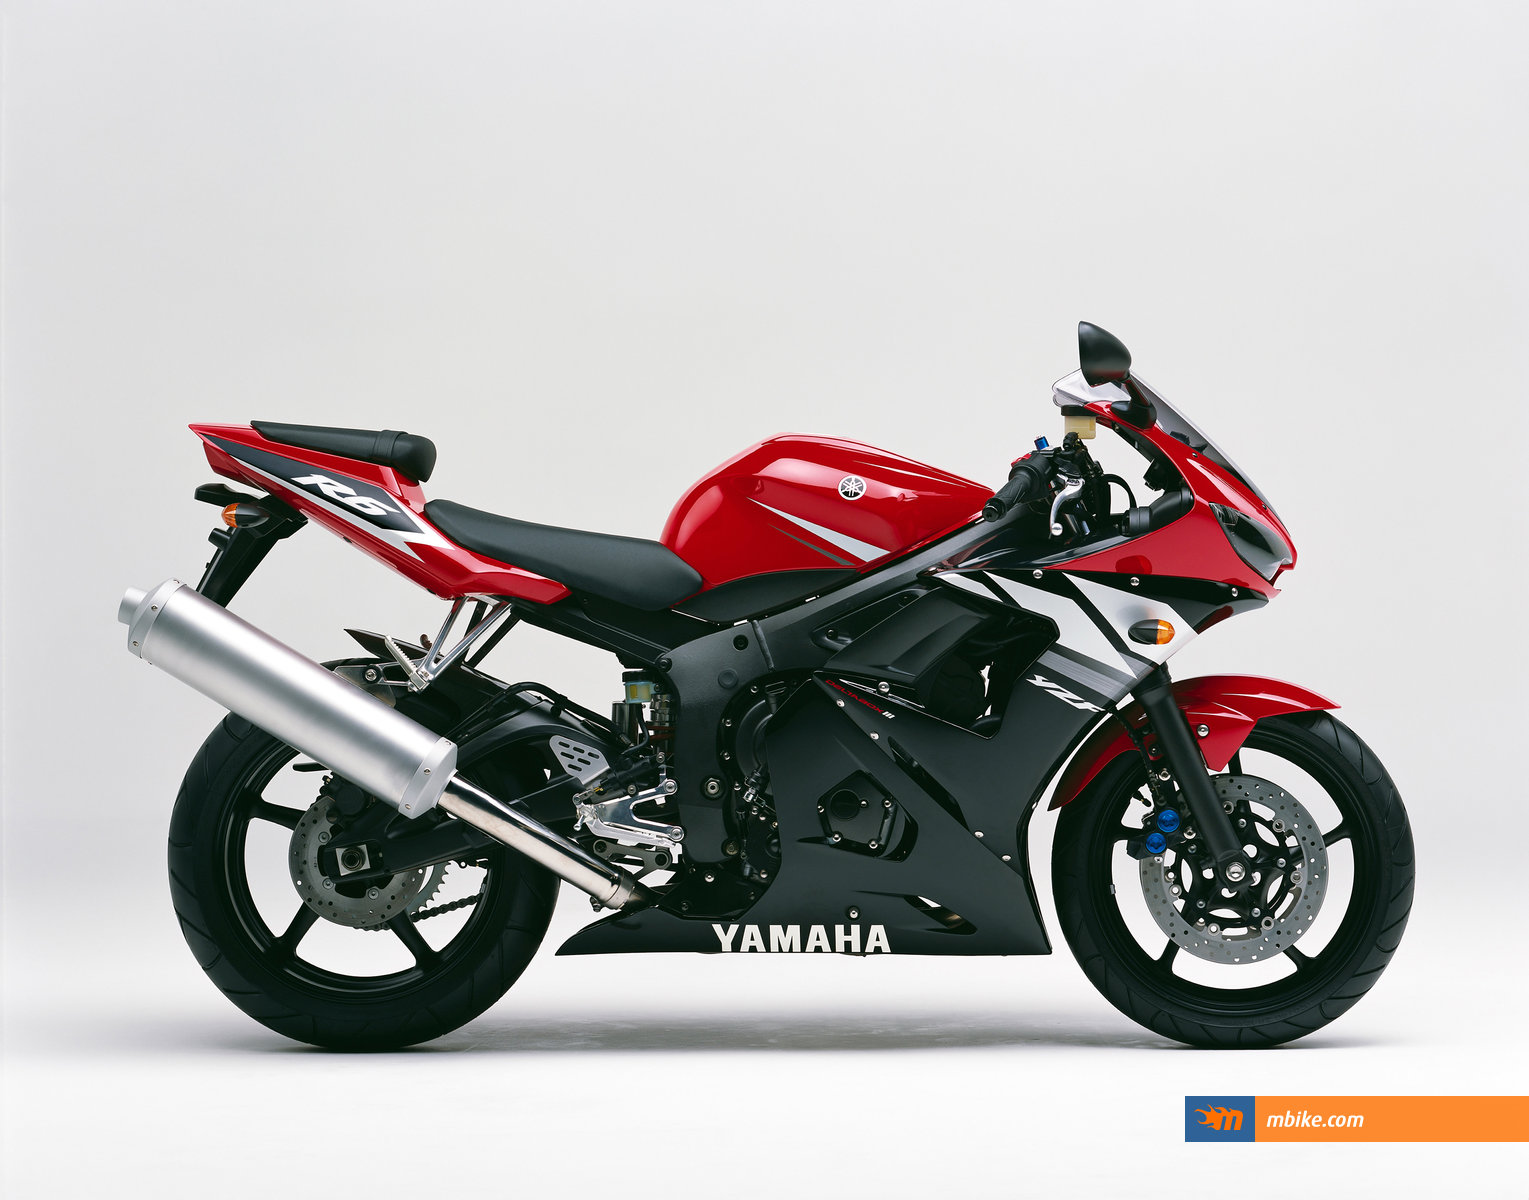 2003 yamaha yzf r6 pics specs and information for Yamaha clp 120 specification